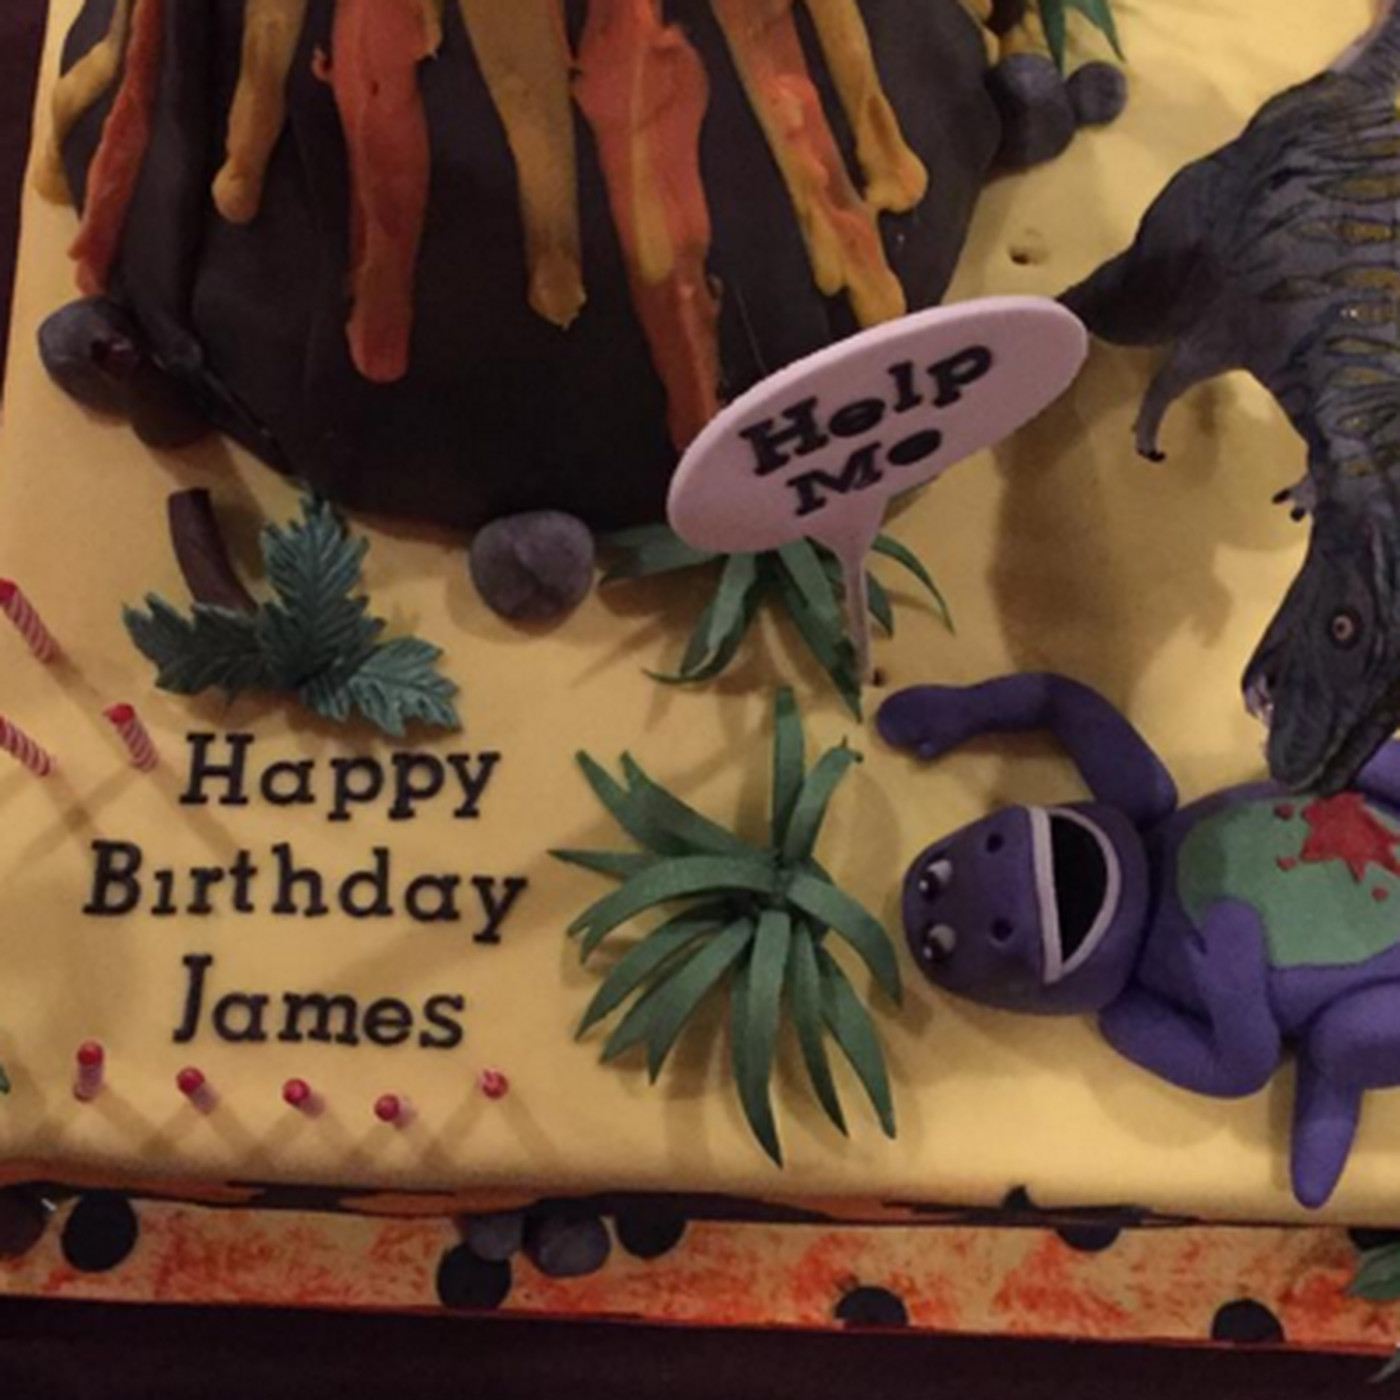 James harrisons sons birthday cake featured a cannibal dinosaur james harrisons sons birthday cake featured a cannibal dinosaur eating barney sbnation thecheapjerseys Images